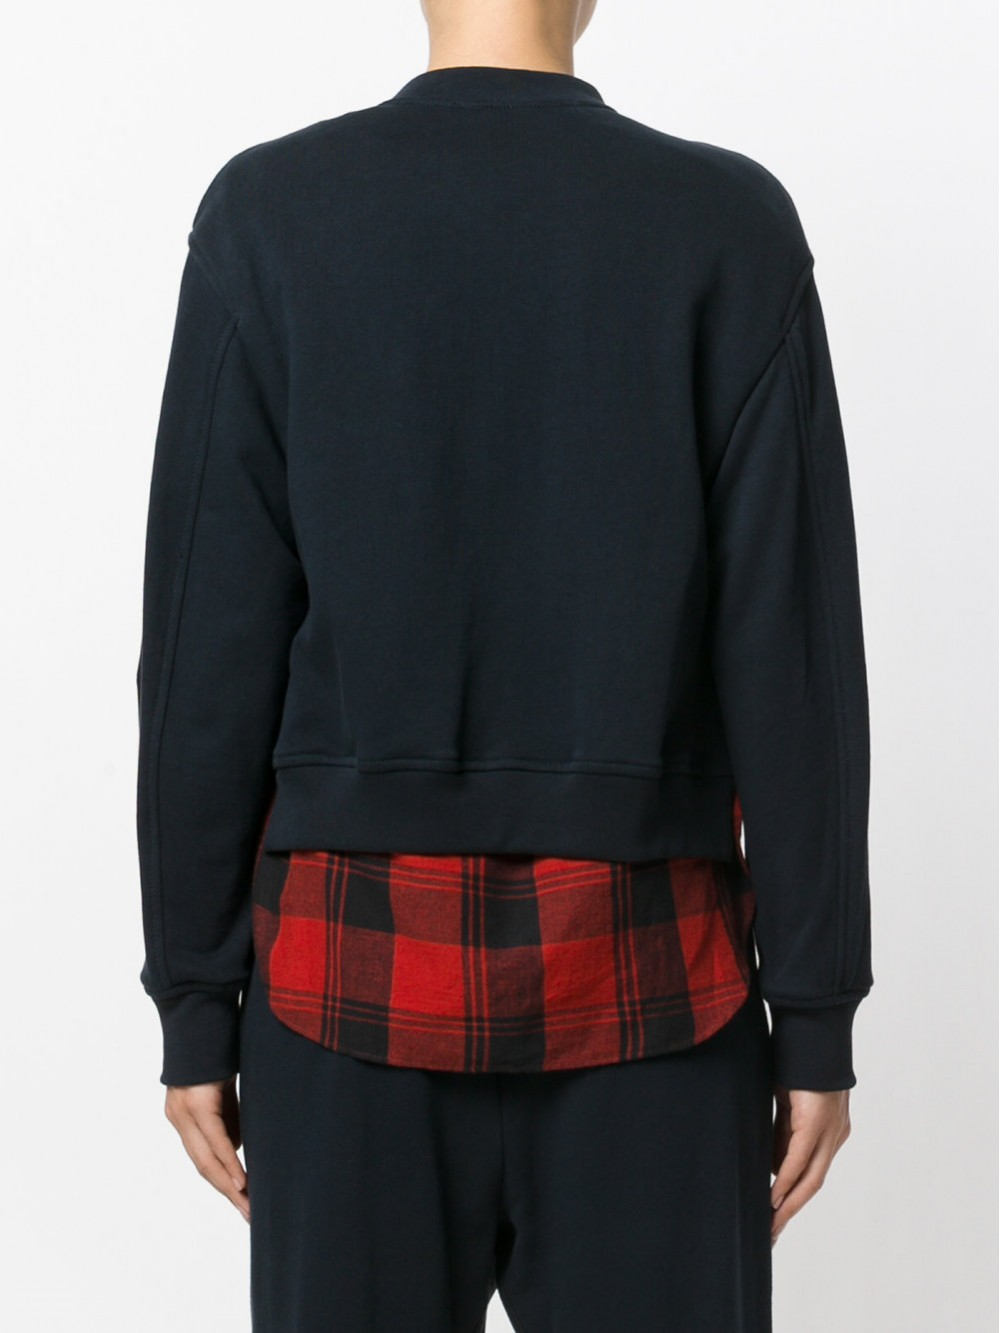 3.1 Phillip Lim Double Layer Bomber